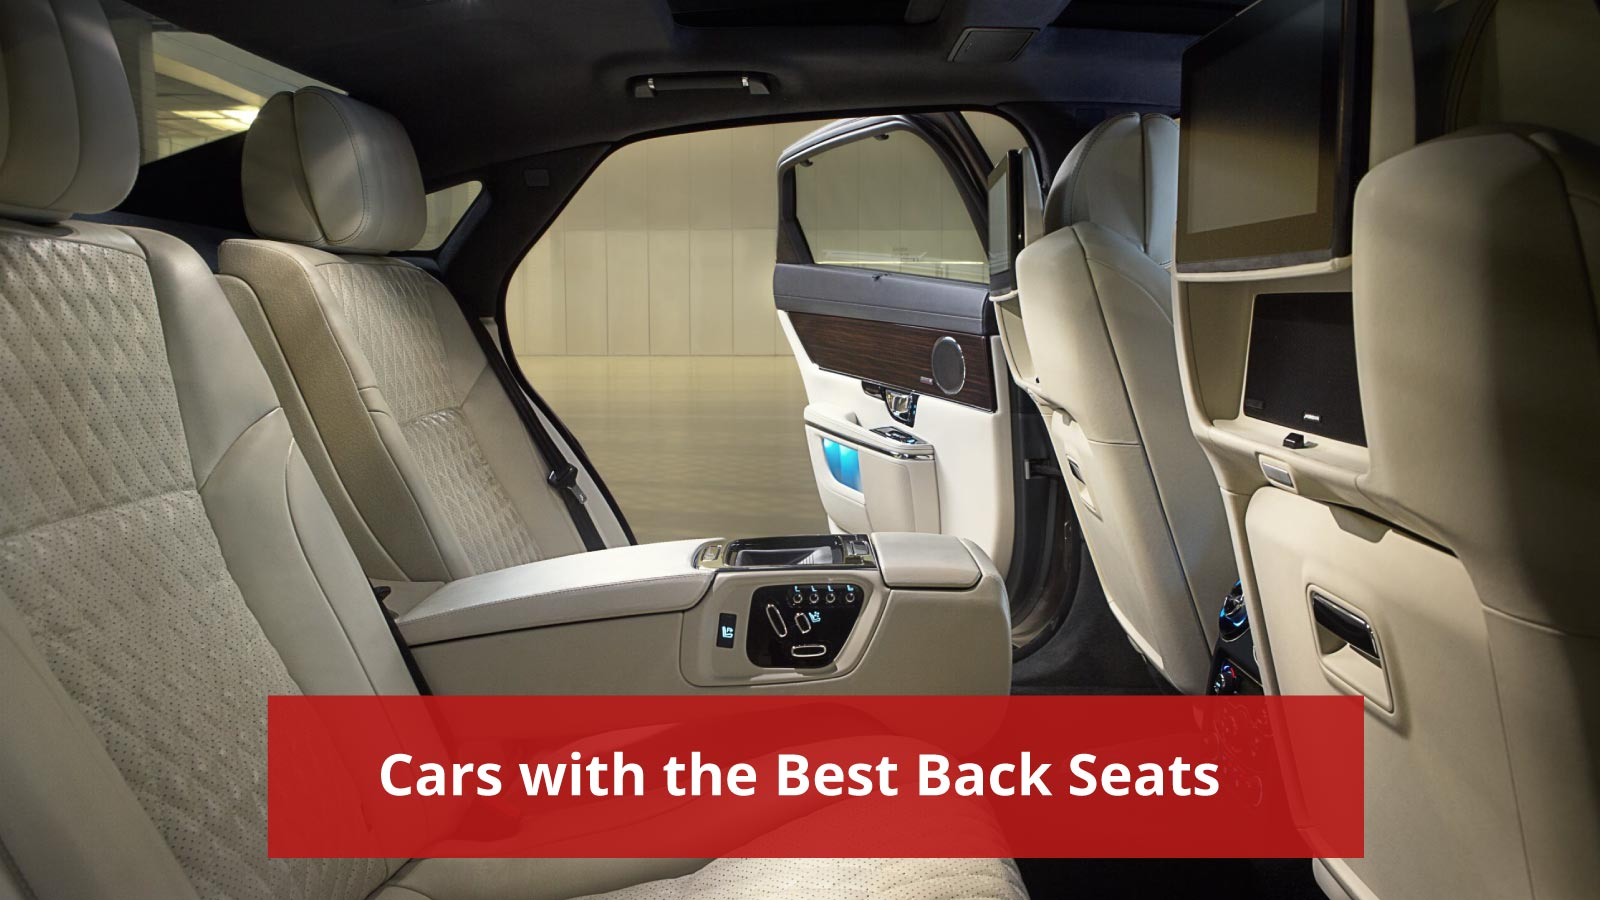 Cars with the Best Back Seats